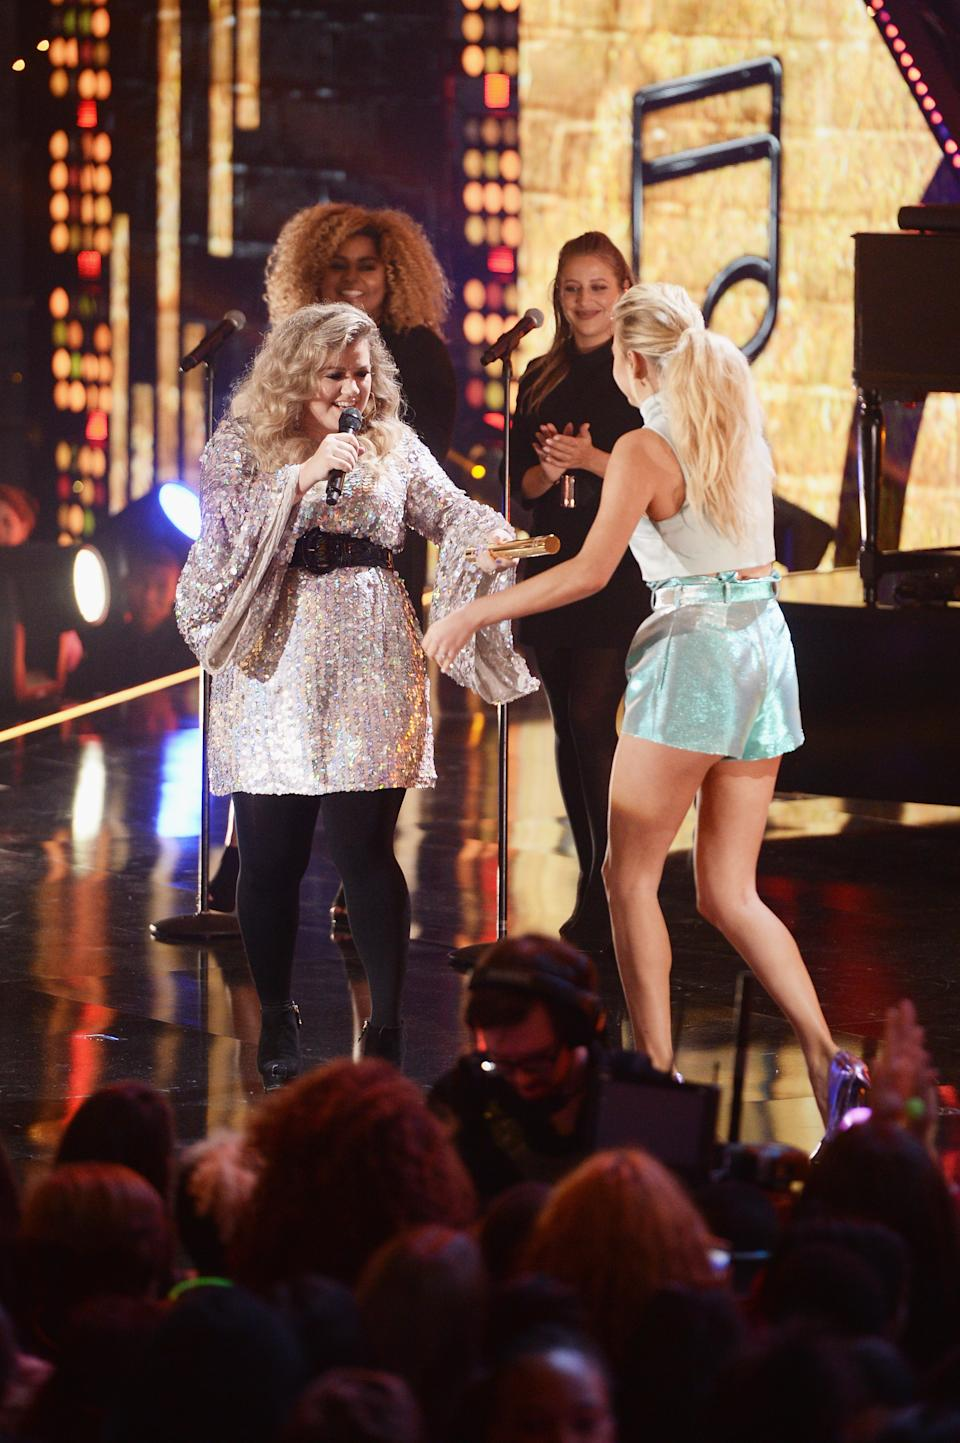 Kelly Clarkson and Kelsea Ballerini onstage at the Nickelodeon HALO Awards in 2017.  (Photo: Andrew Toth/Getty Images for Nickelodeon)